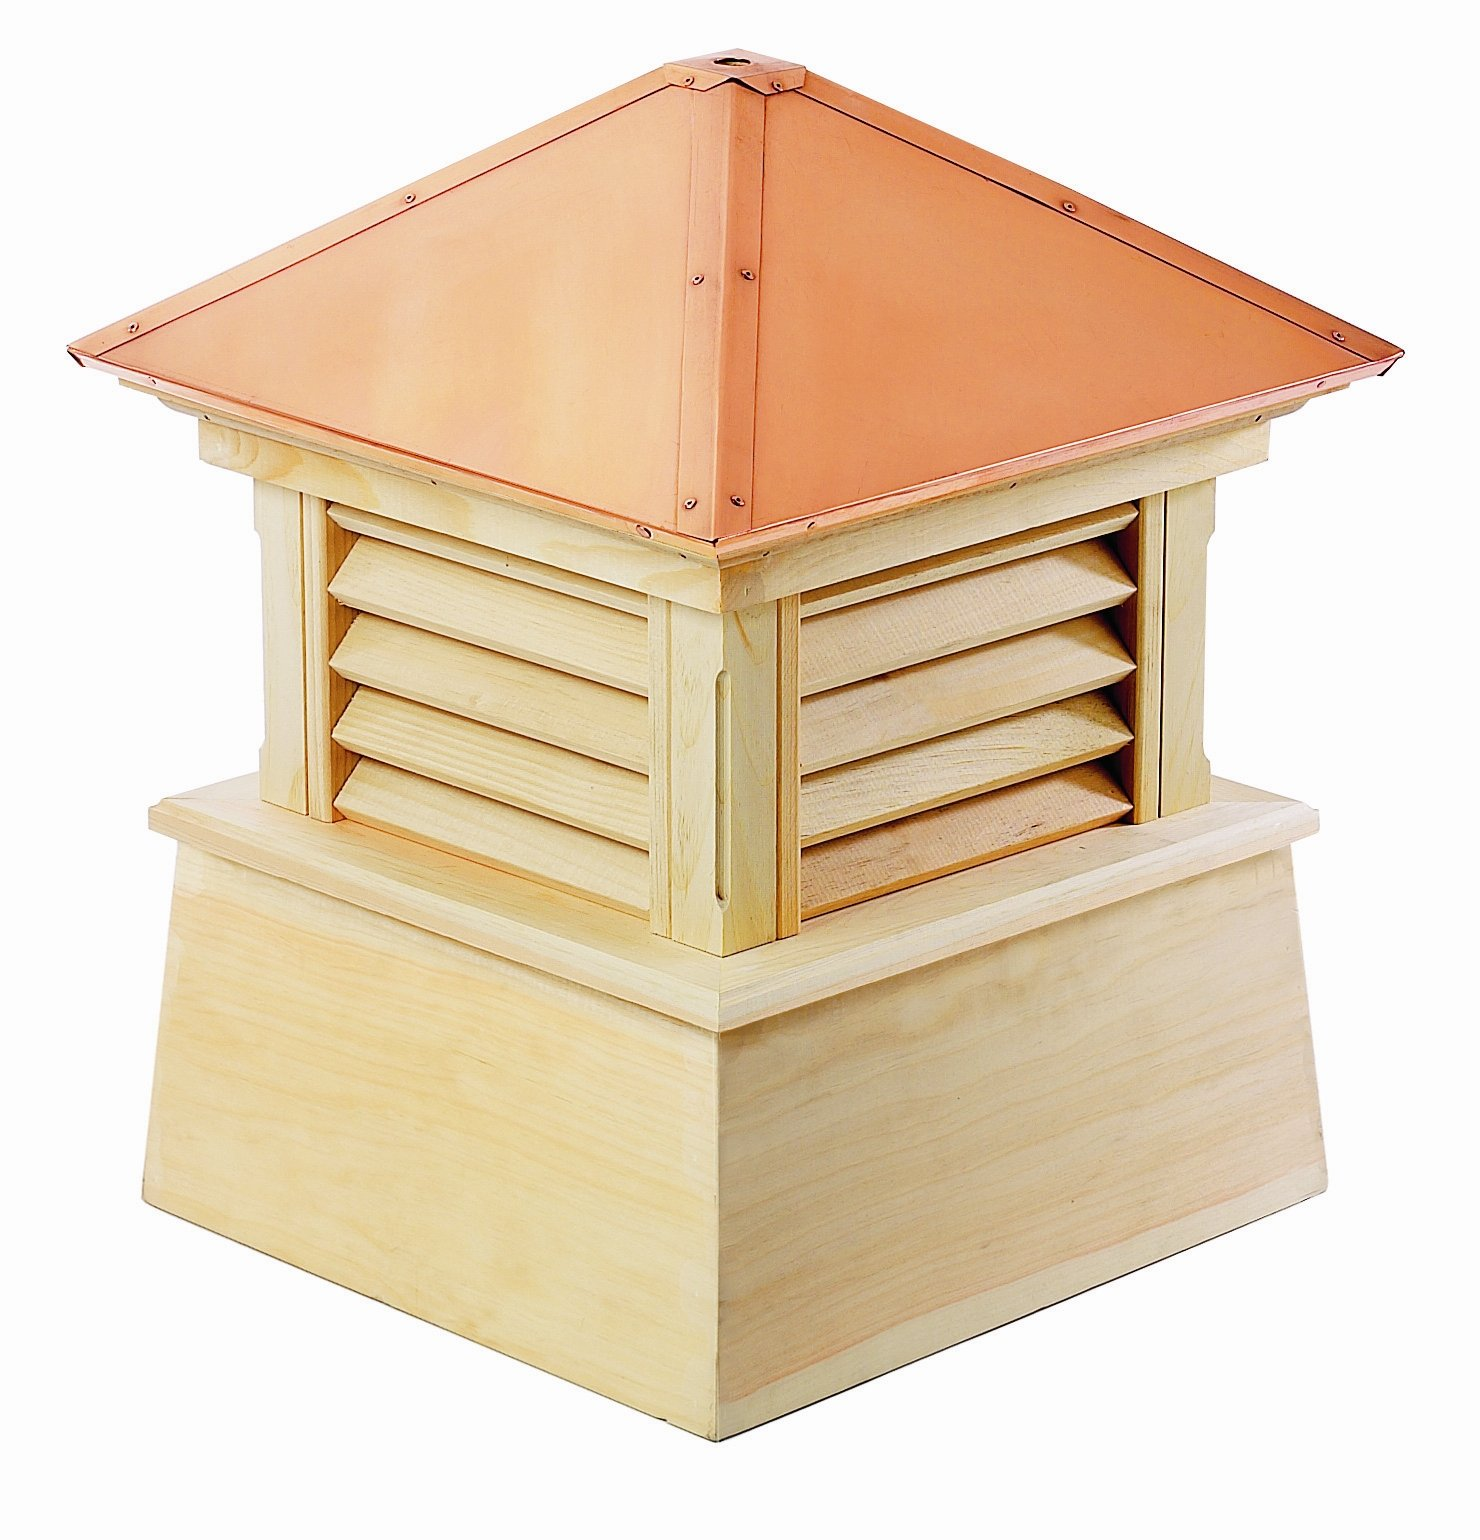 Good Directions Manchester Louvered Cupola with Pure Copper Roof, Cypress Wood, 26'' x 32'', Quick Ship, Reinforced Rafters and Louvers, Cupolas by Good Directions (Image #2)